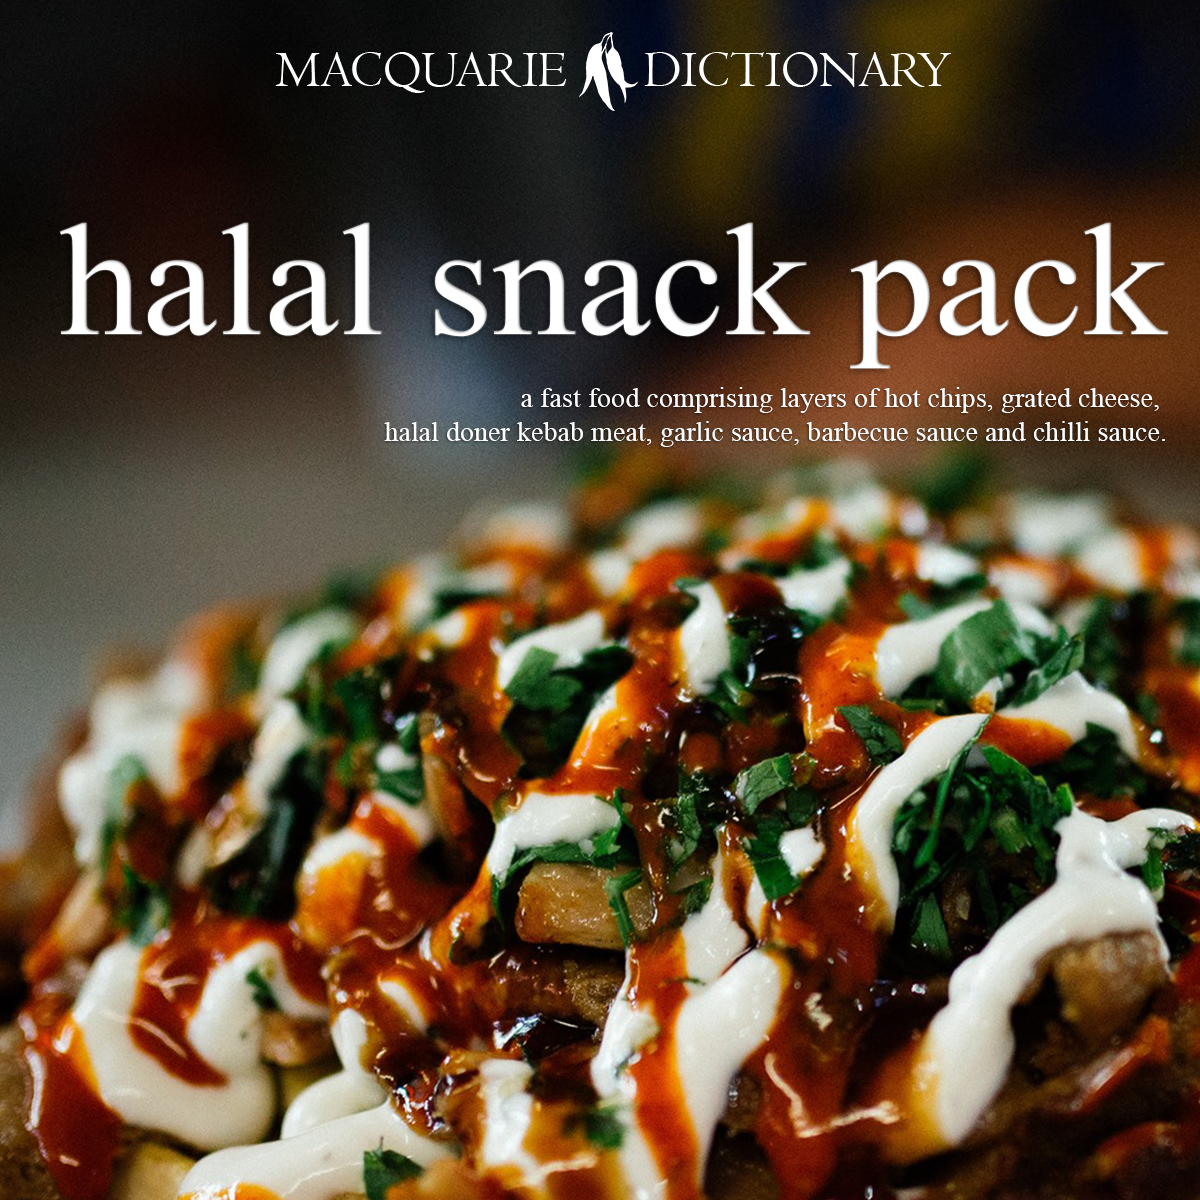 halal snack pack - a fast food comprising layers of hot chips, grated cheese, halal doner kebab meat, garlic sauce, barbecue sauce and chilli sauce.